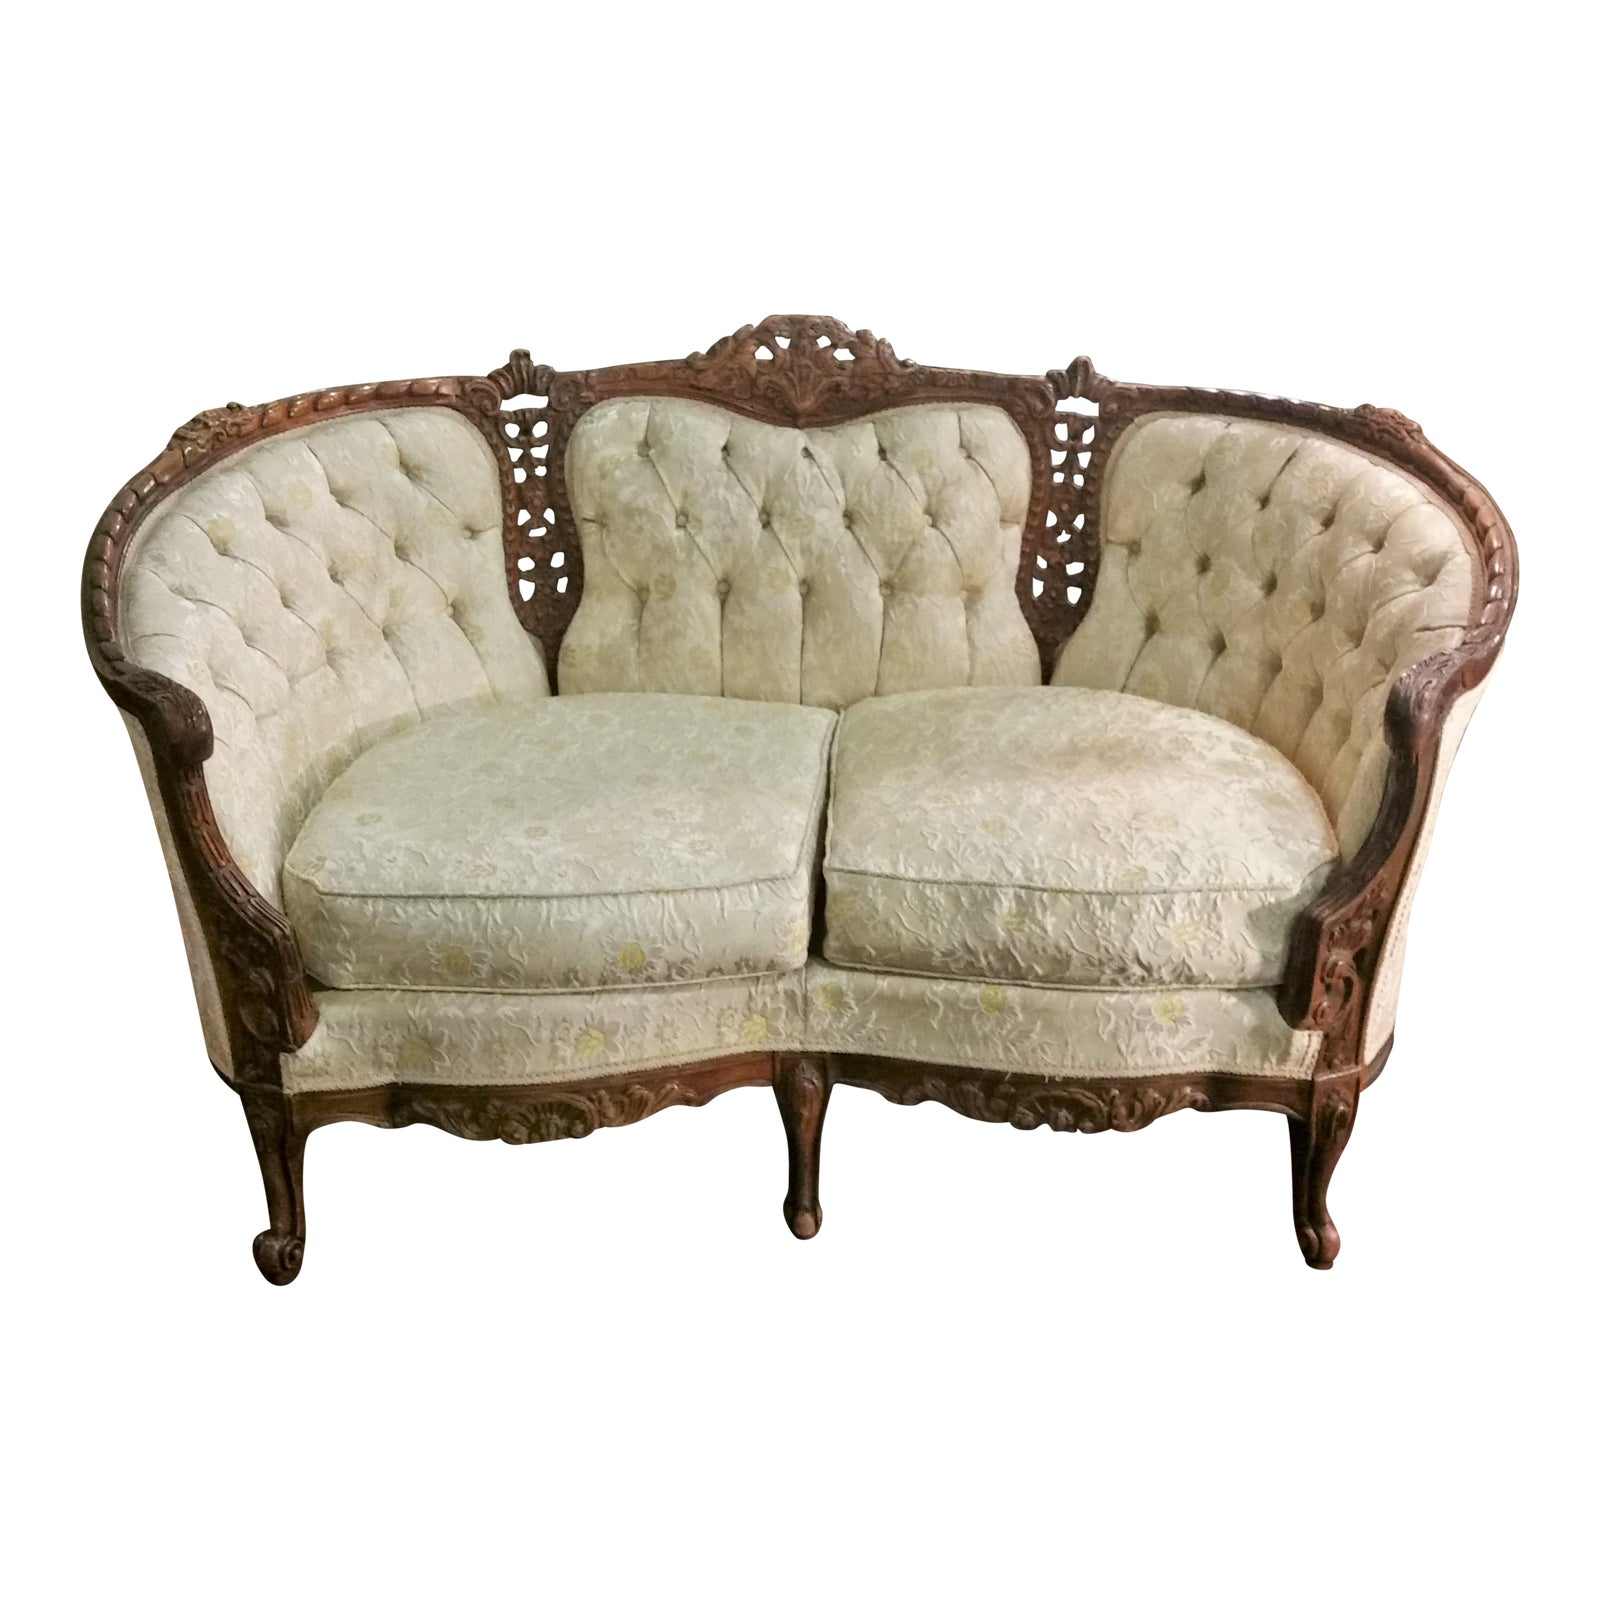 Vintage French Provincial Ornately Carved Small Settee Sofa Couch -